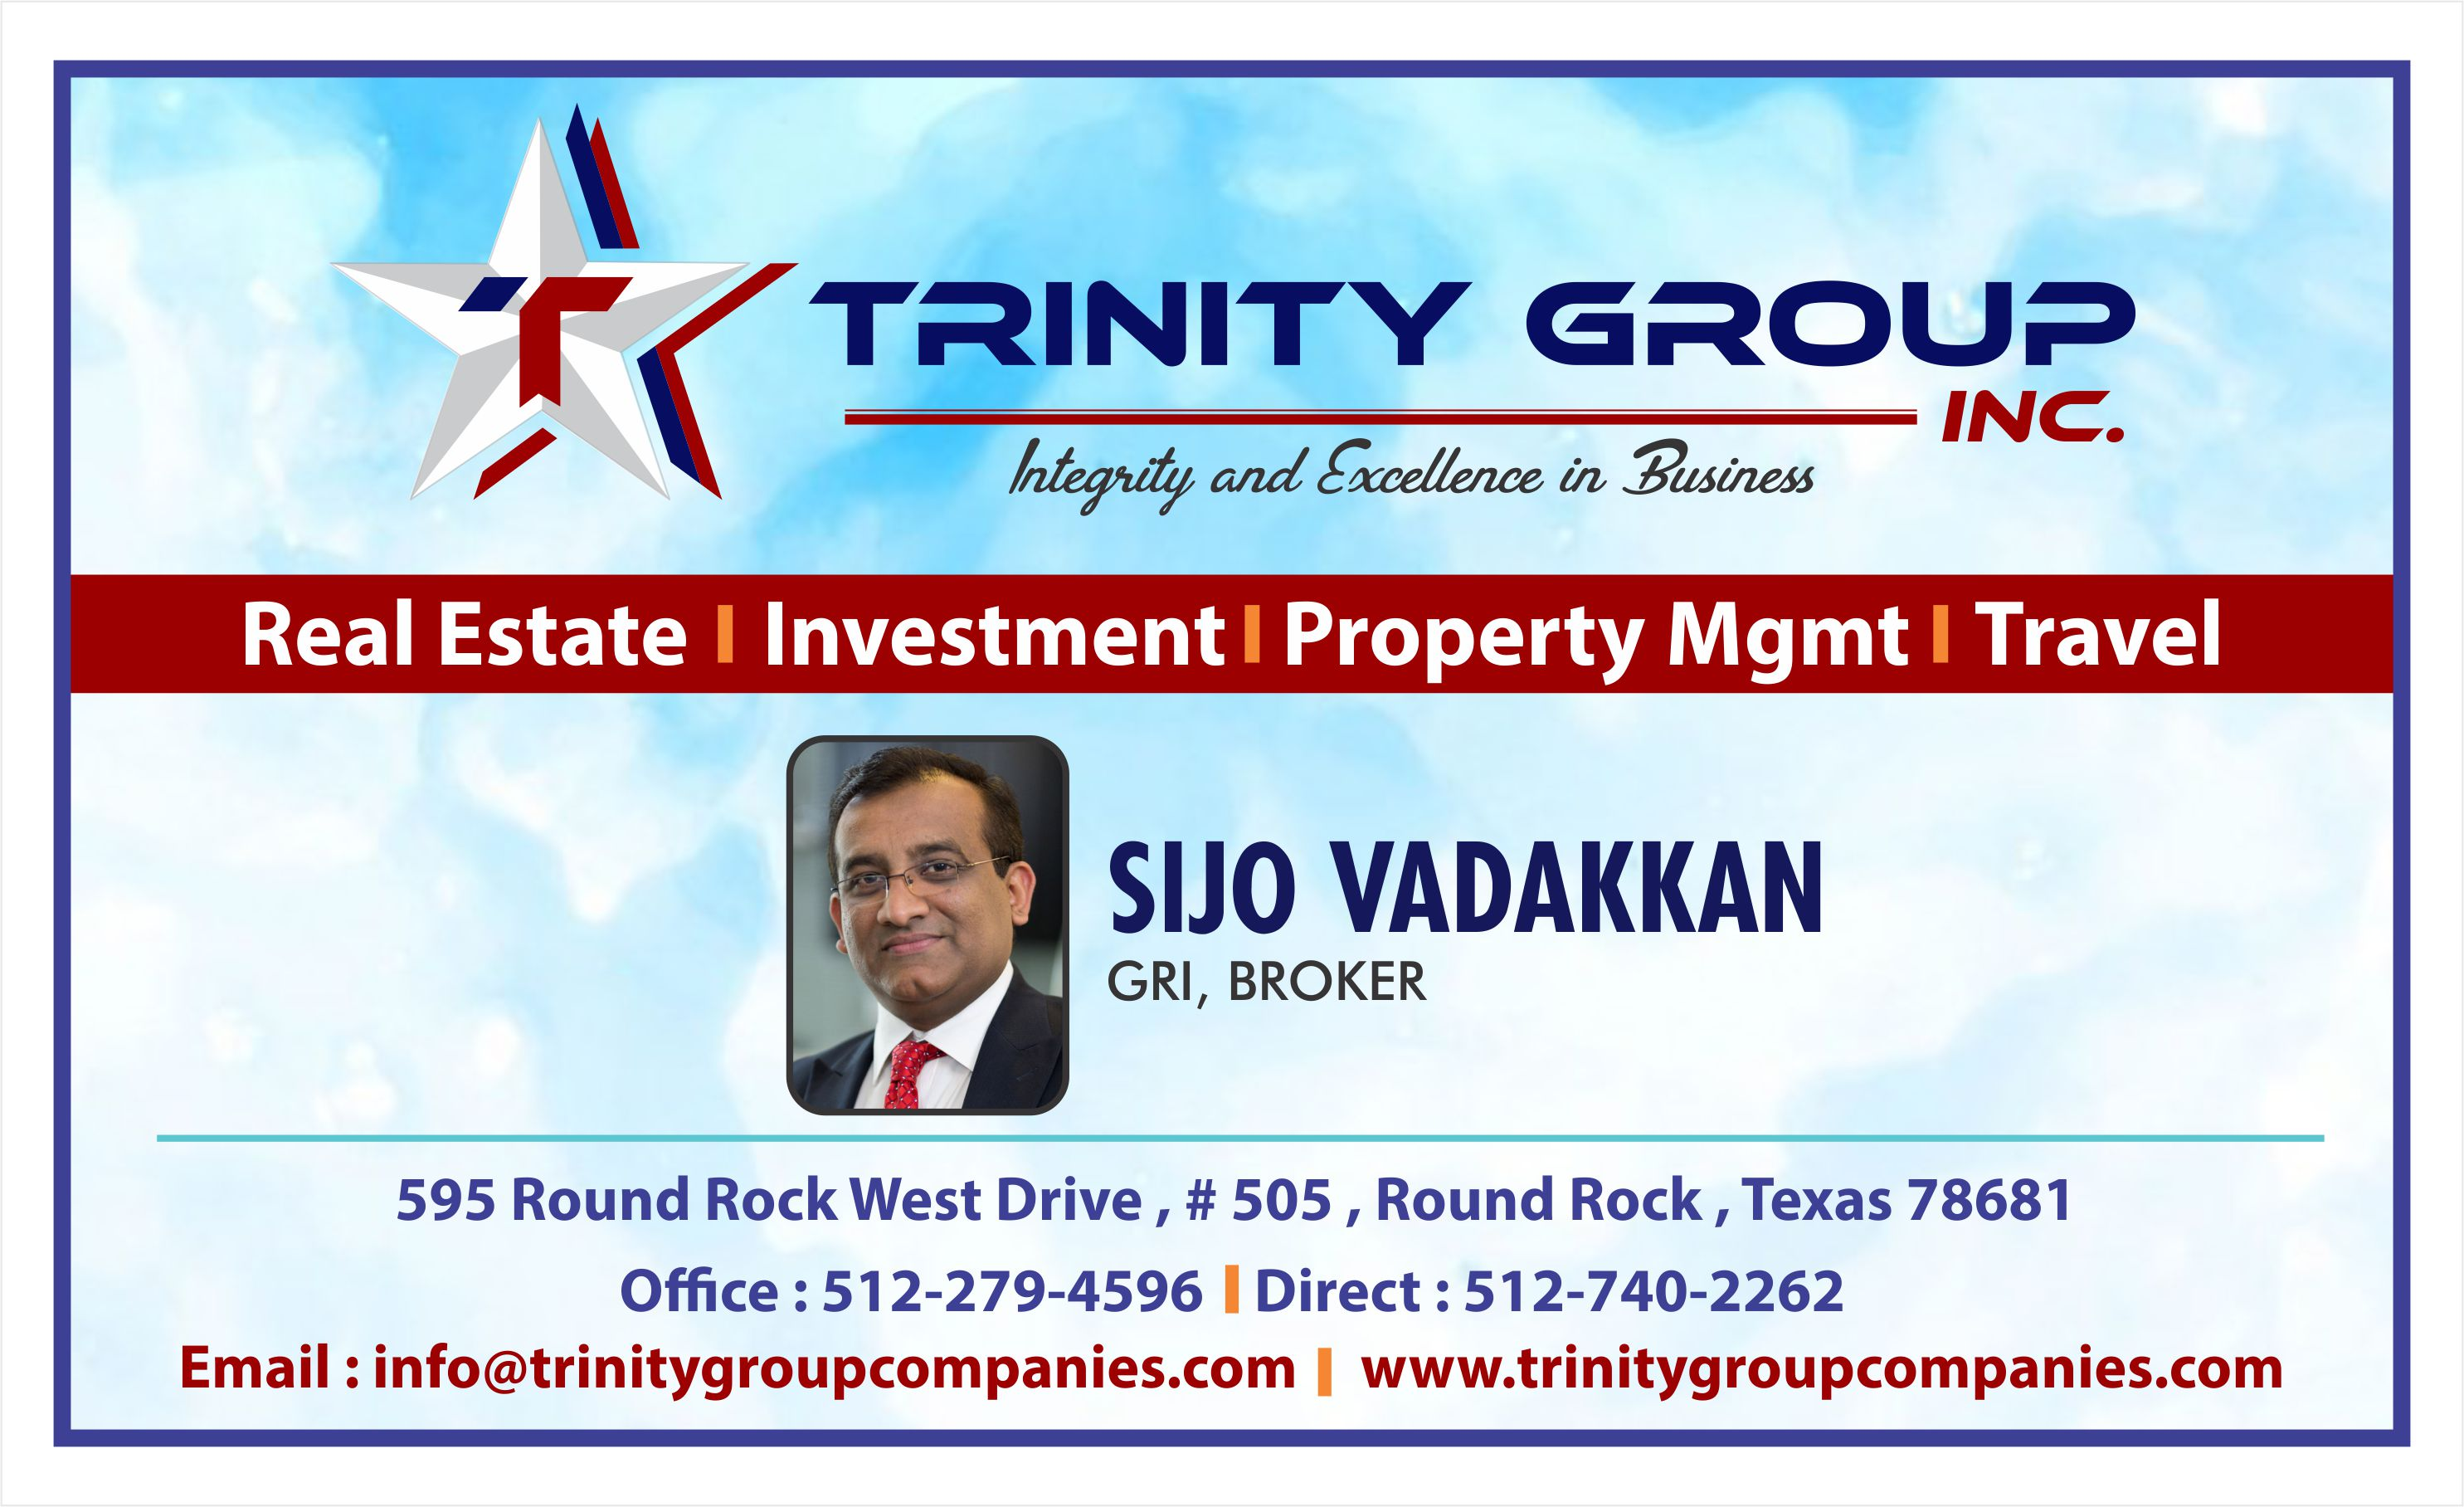 Trinity Group Inc.